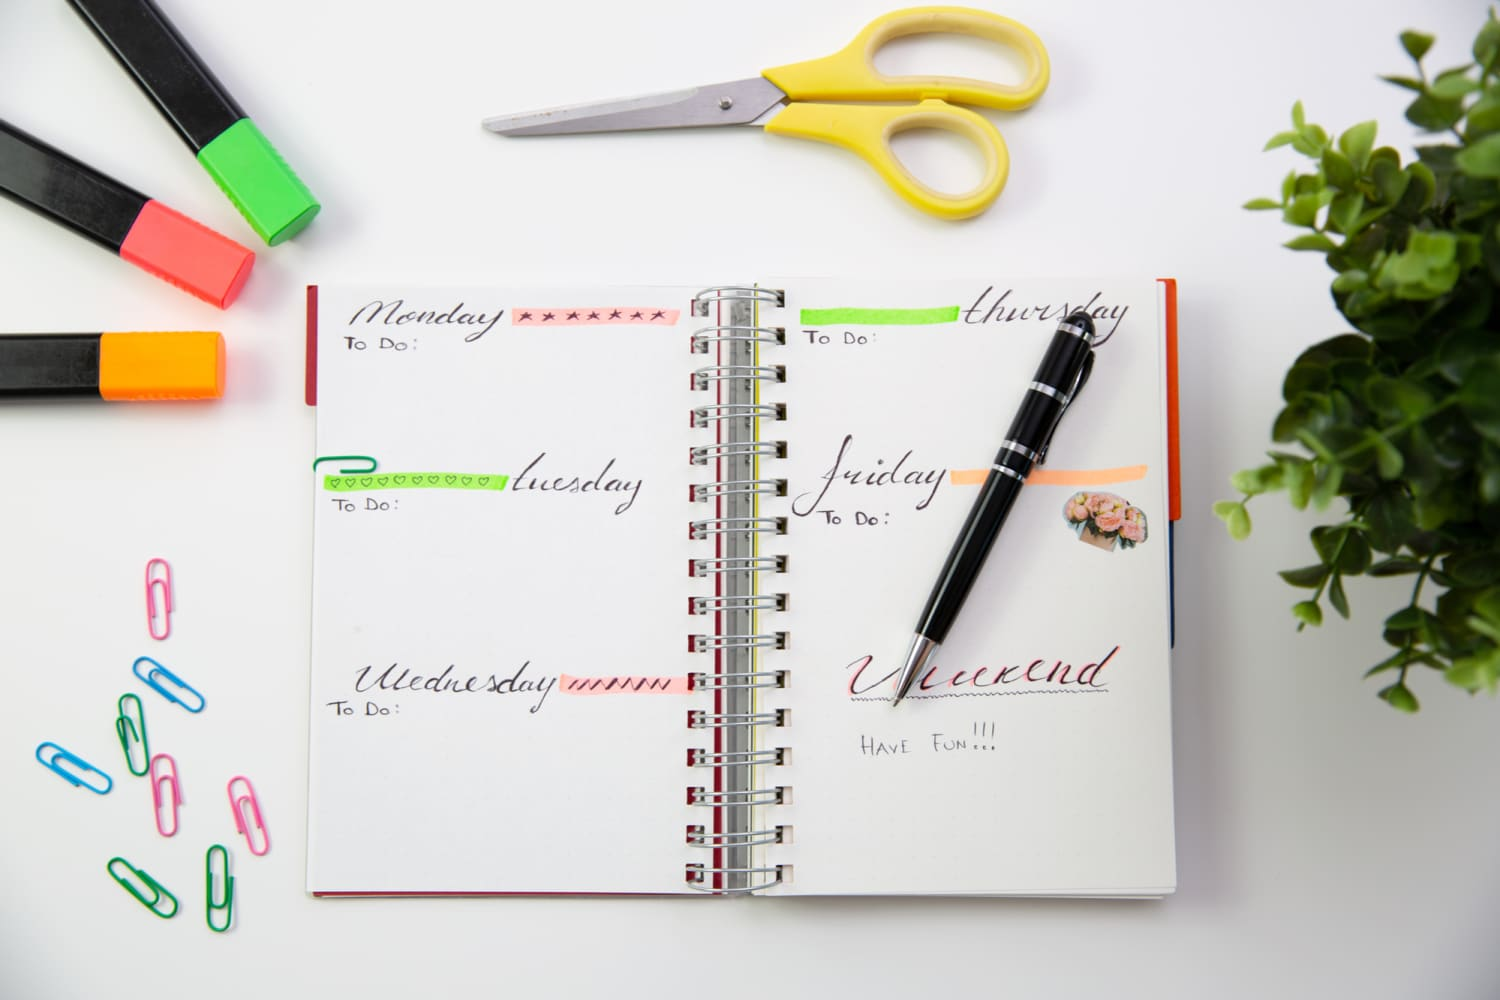 5 Simple, Proven Ways To-Do List Hacks that Keep Me Happier and More Productive